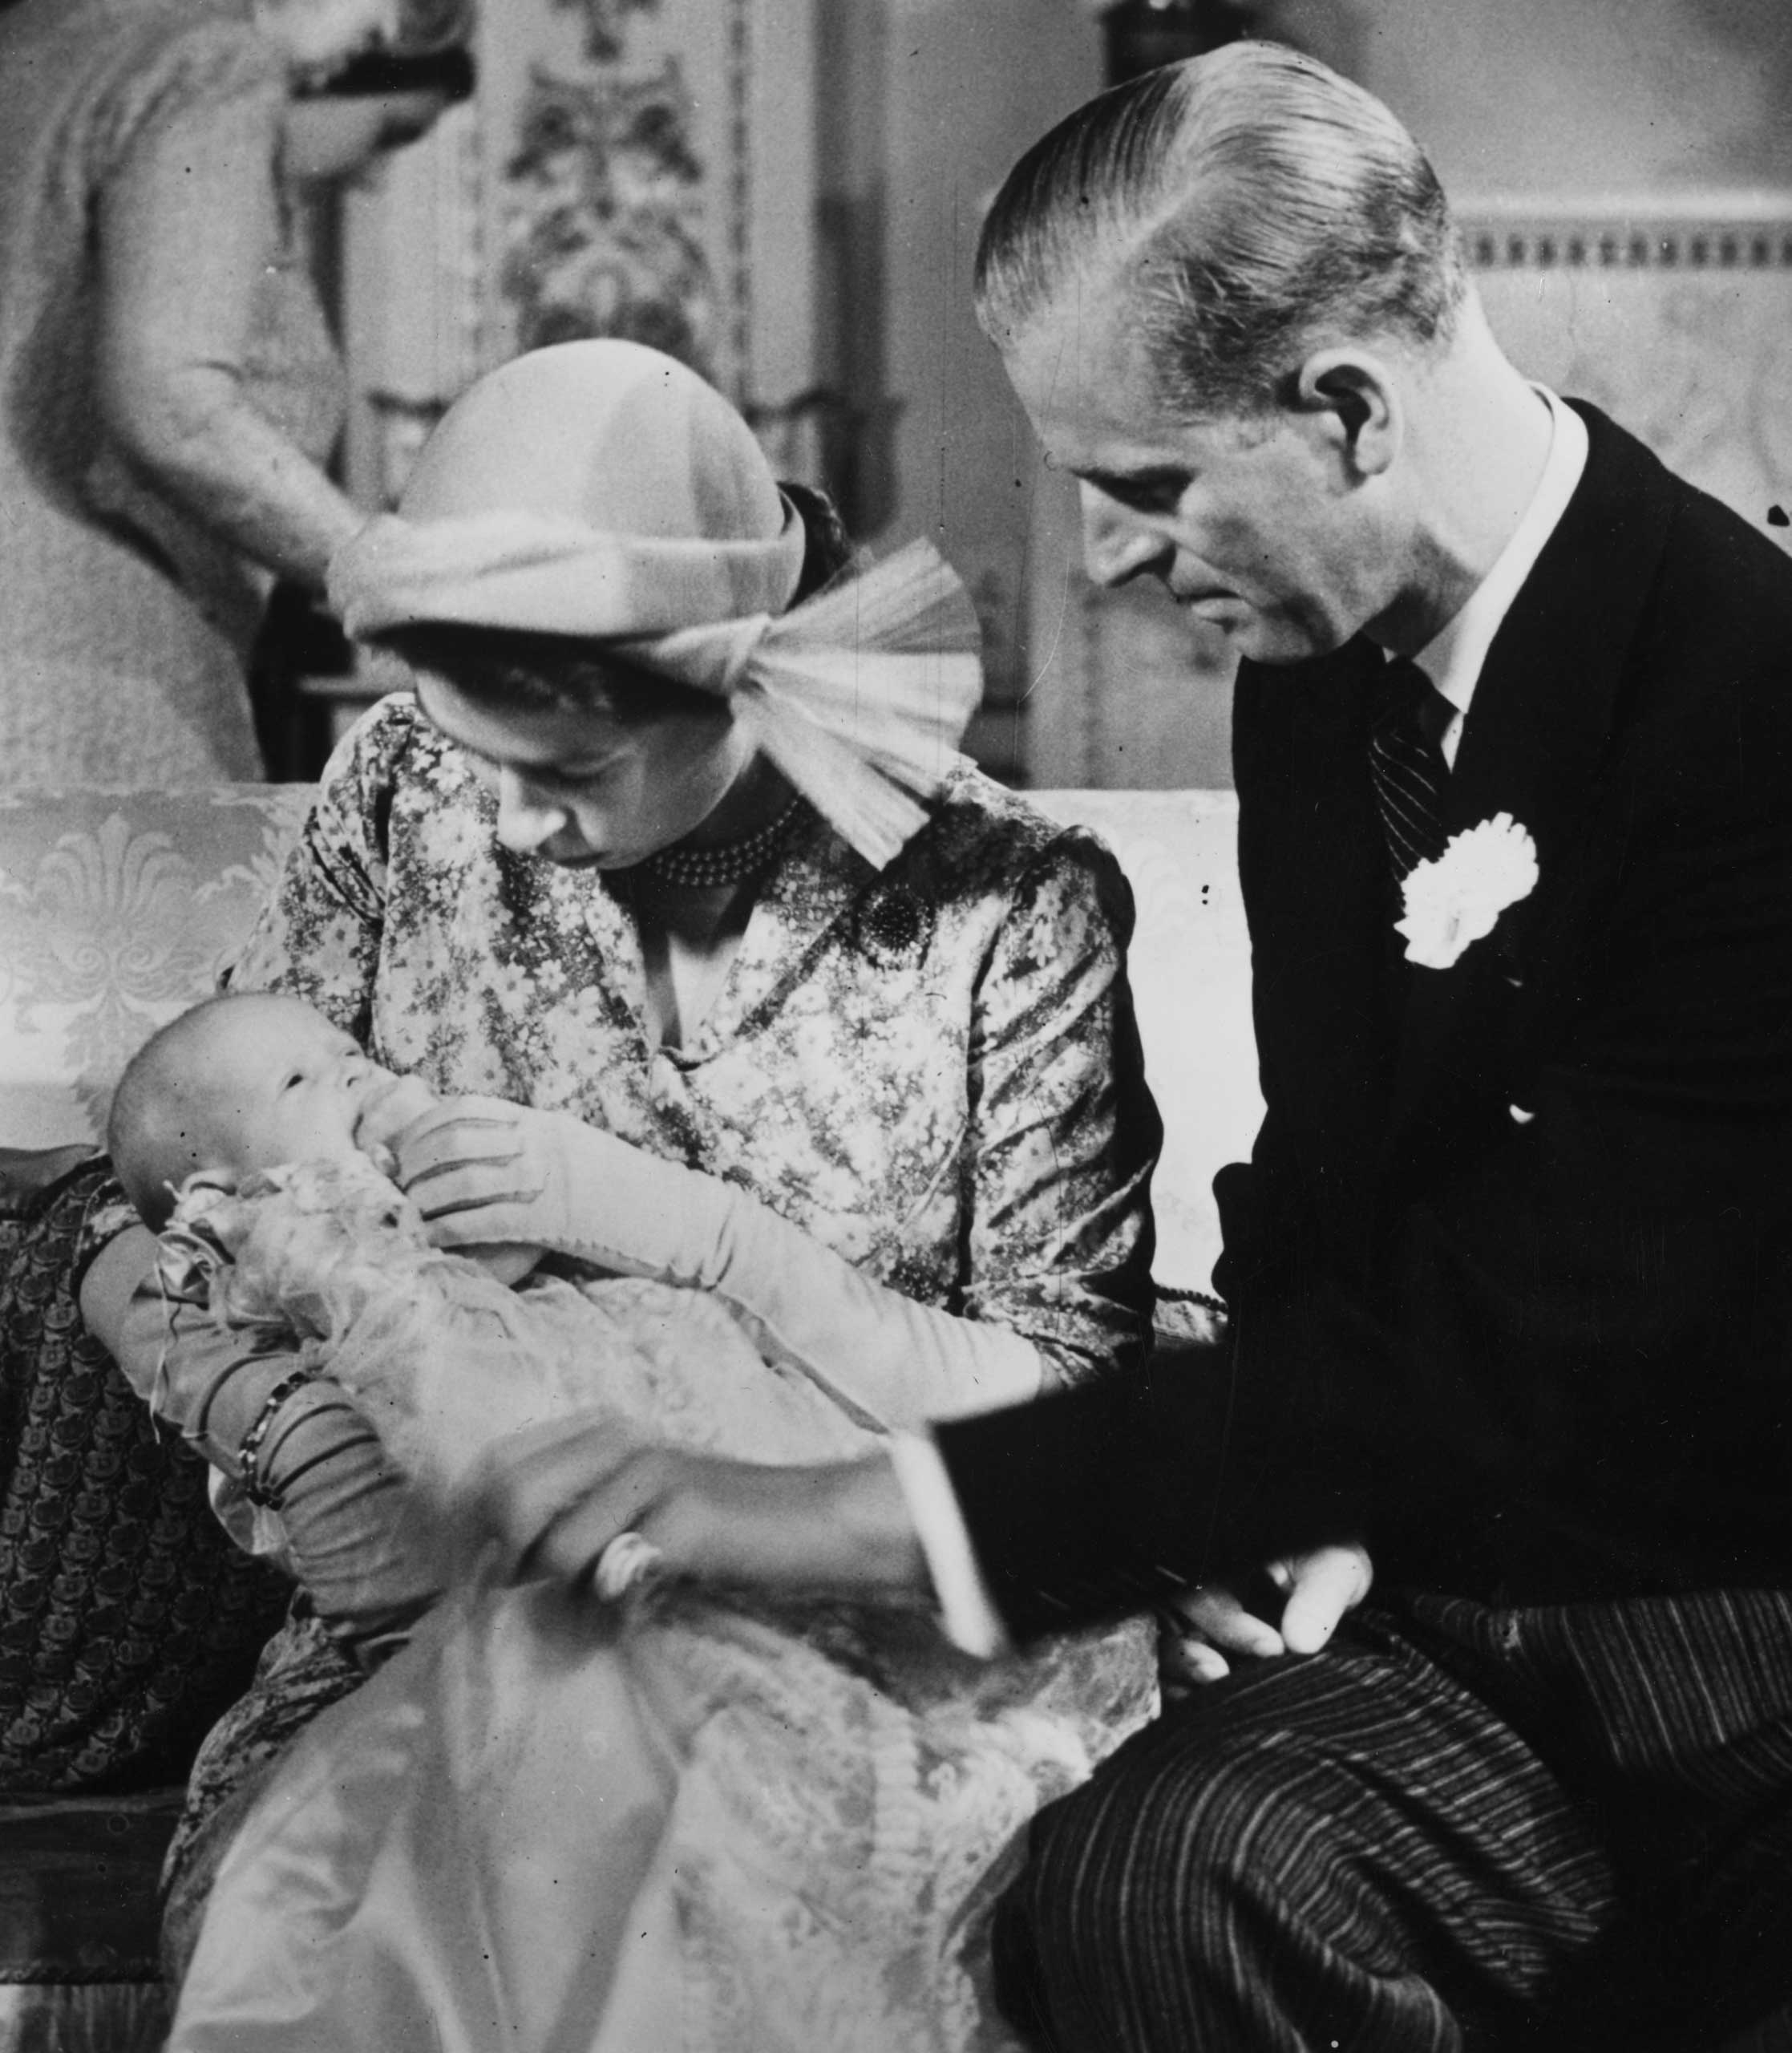 Princess Anne, second child of Princess Elizabeth and Prince Philip, pictured at her 1950 christening, must have been born with horse sense. She won a gold and two silver medals at European equestrian competitions and rode for the U.K. in the 1976 Olympics.